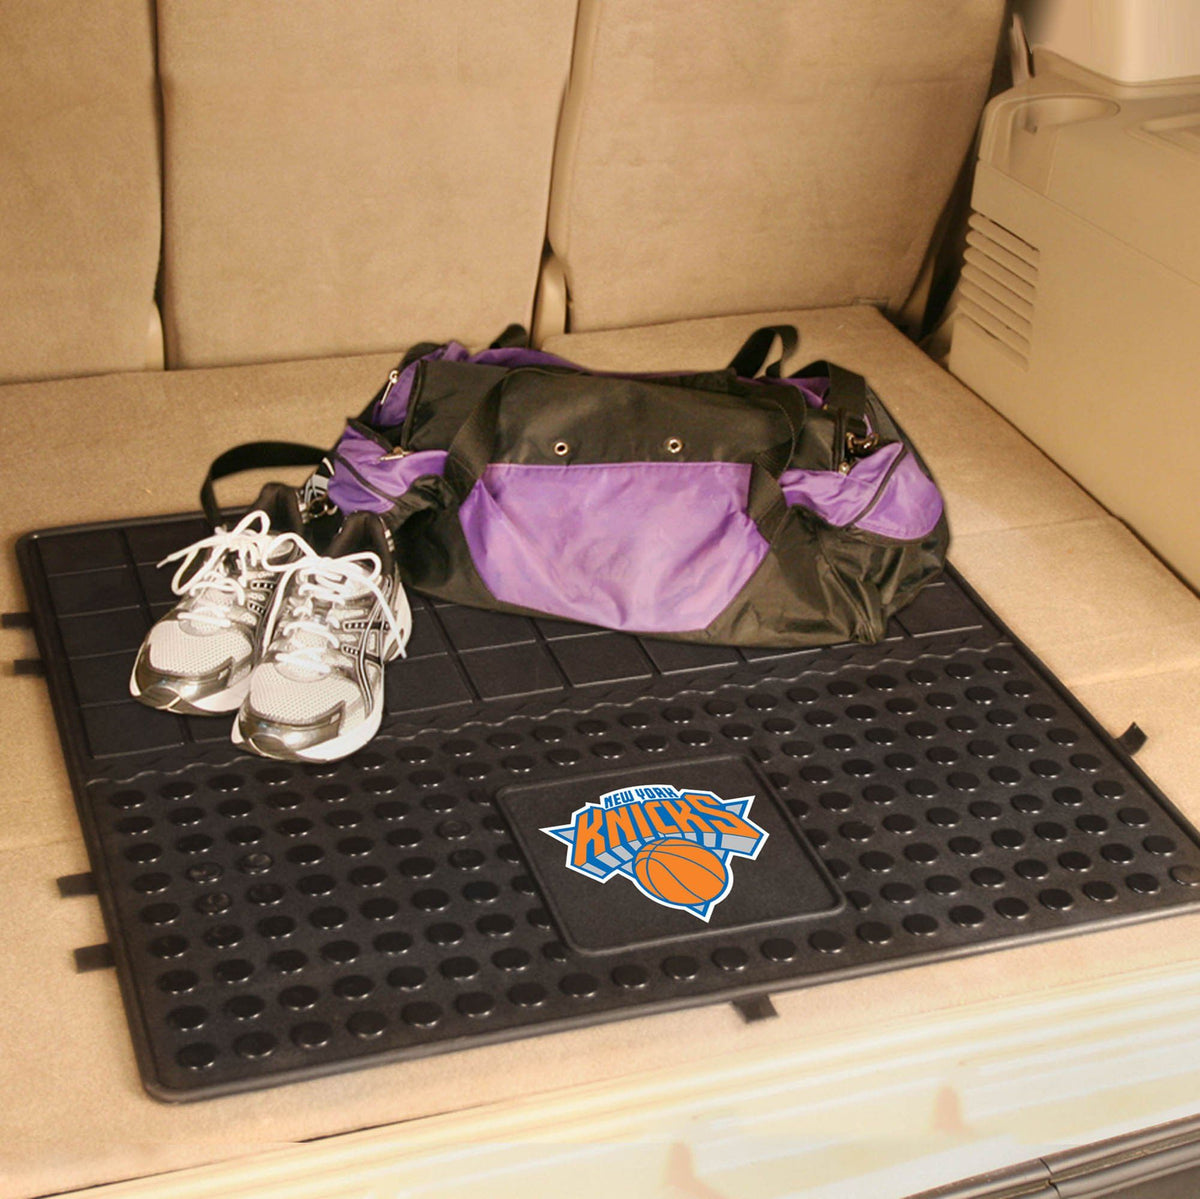 NBA - Heavy Duty Vinyl Cargo Mat NBA Mats, Trunk Mats, Heavy Duty Vinyl Cargo Mat, NBA, Auto Fan Mats New York Knicks